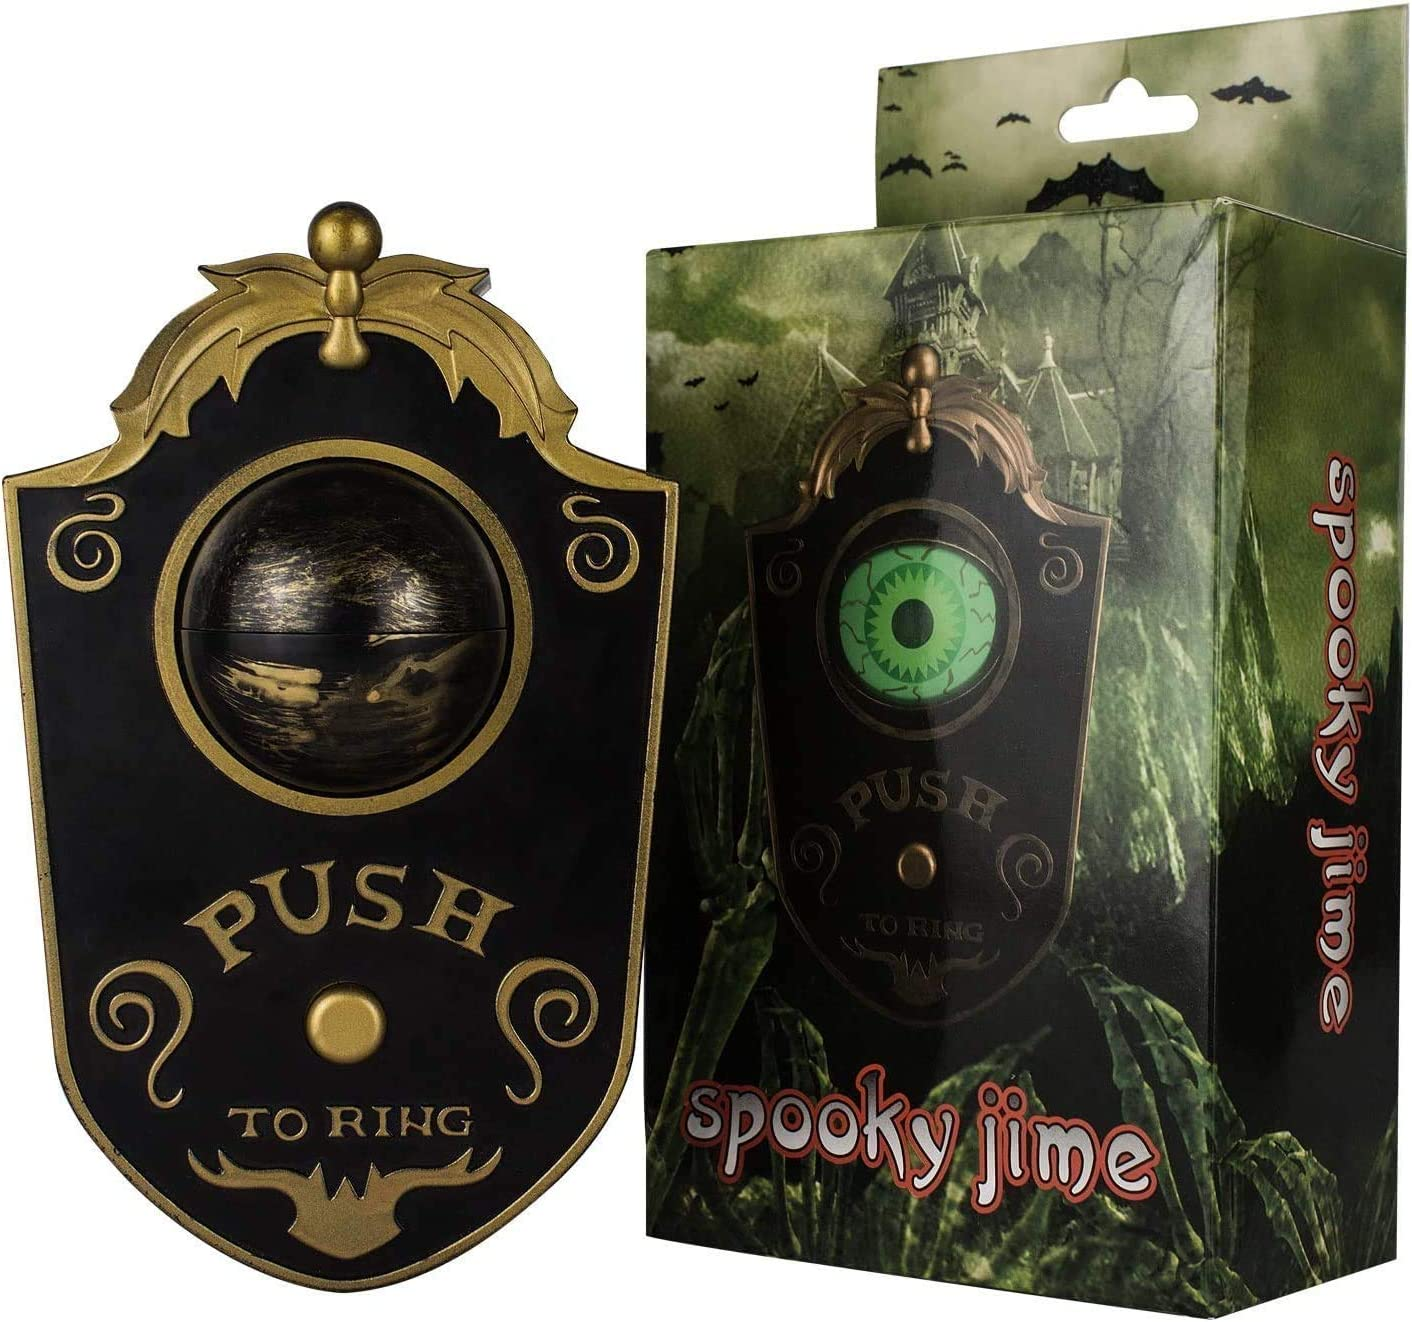 Halloween Decoration, Talking Lightup Doorbell Animated Eyeball for Indoor & Outdoor, Halloween Decor with Spooky Sounds, Trick or Treat Event for Kids, Haunted House Halloween Party Prop Decoration